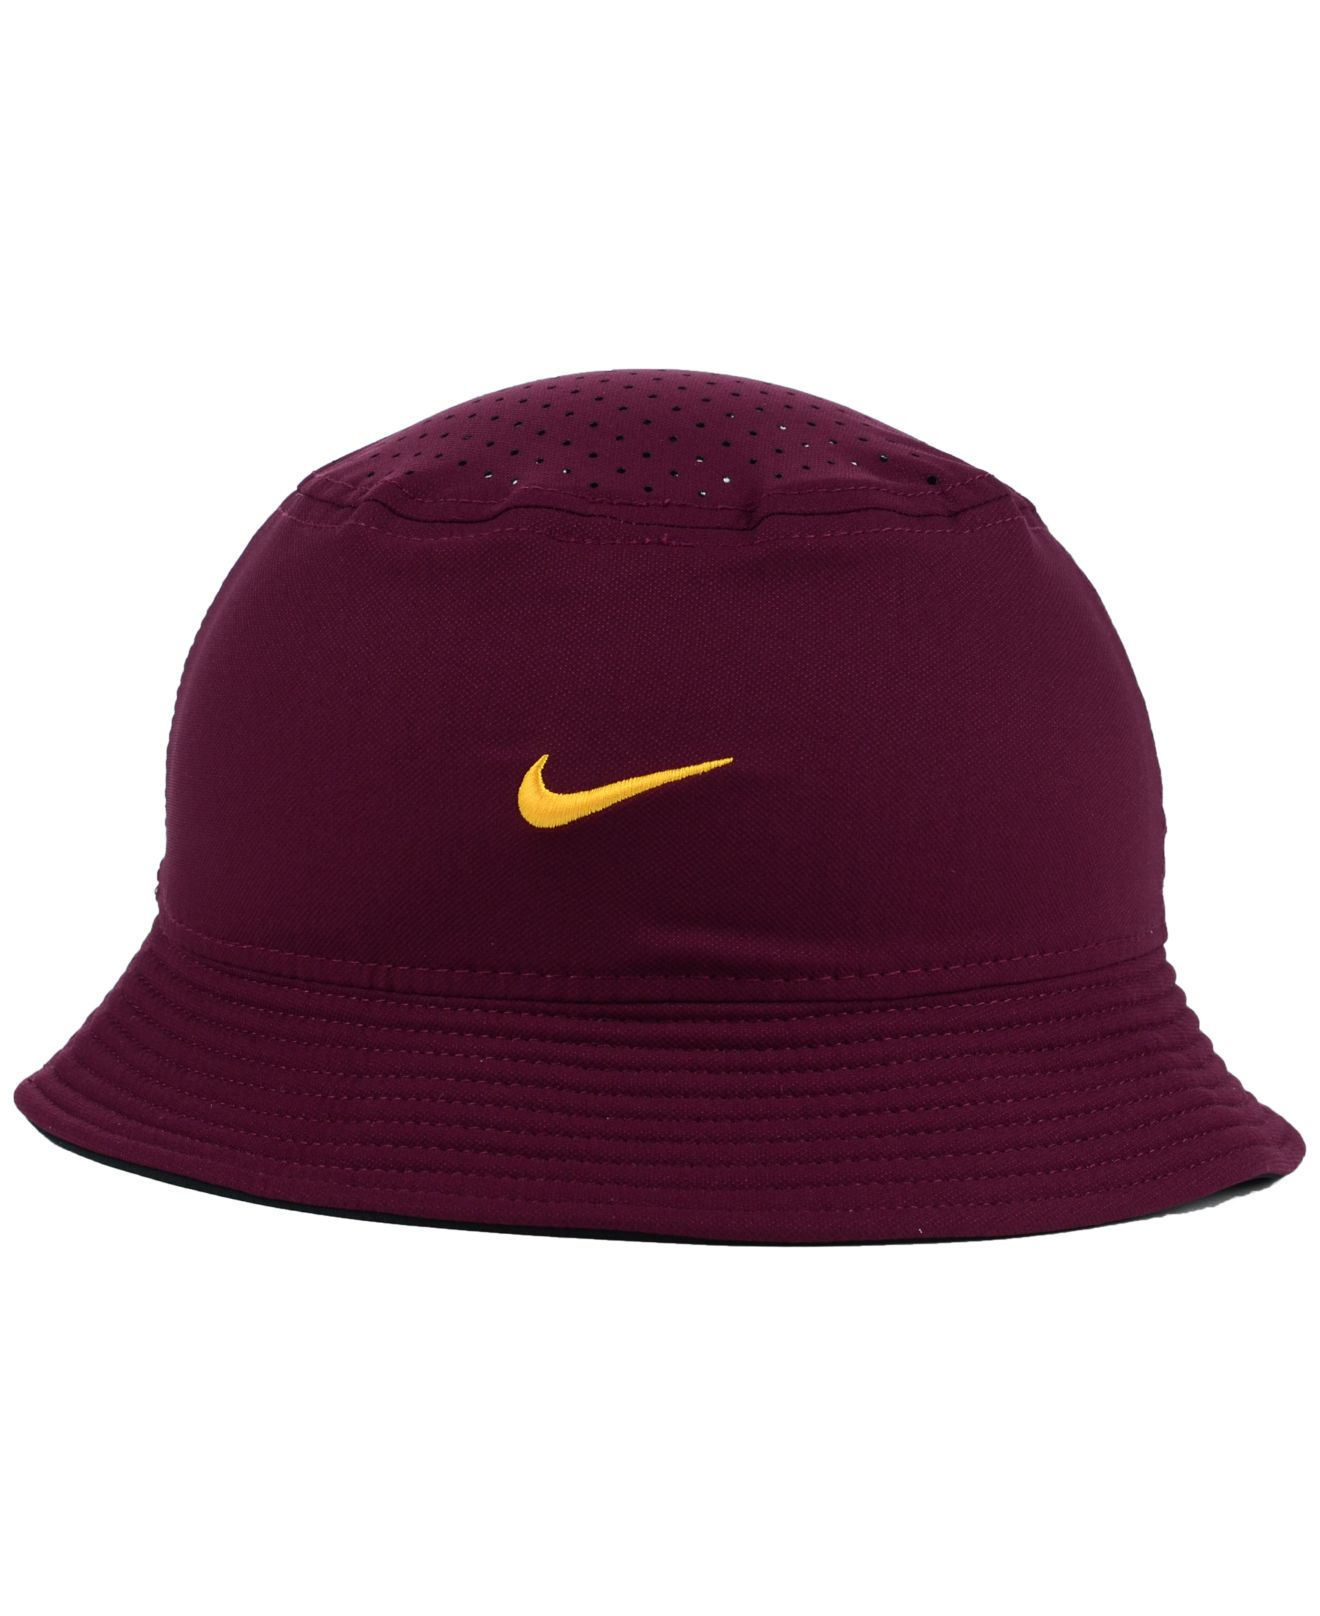 a8b01c1b978 ... where can i buy lyst nike arizona state sun devils vapor bucket hat in  purple for